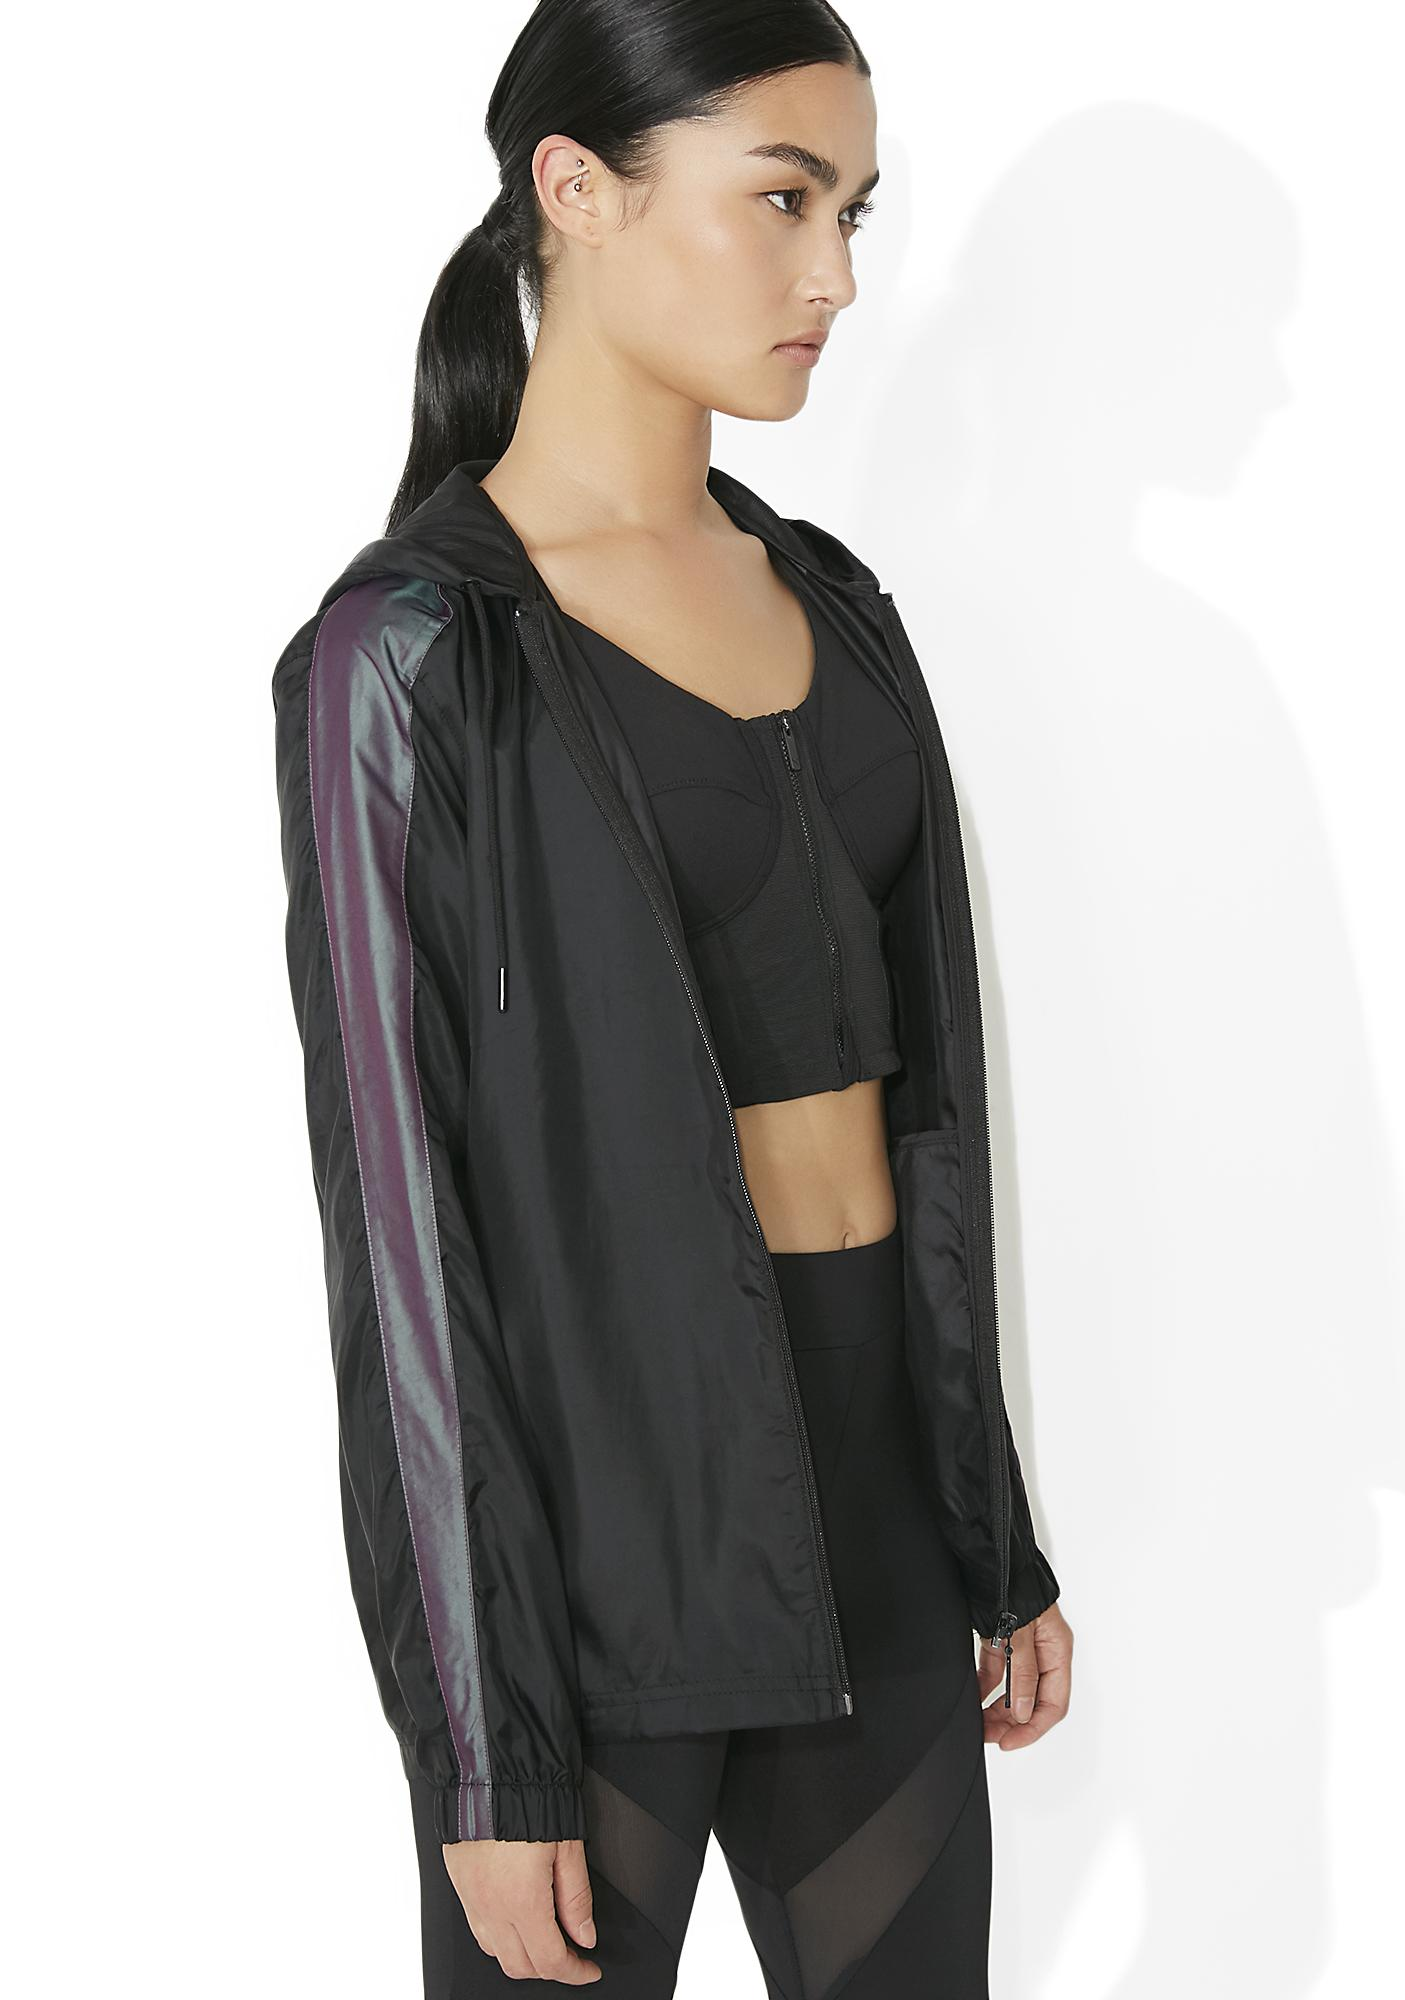 PUMA T7 Iridescent Wind Jacket